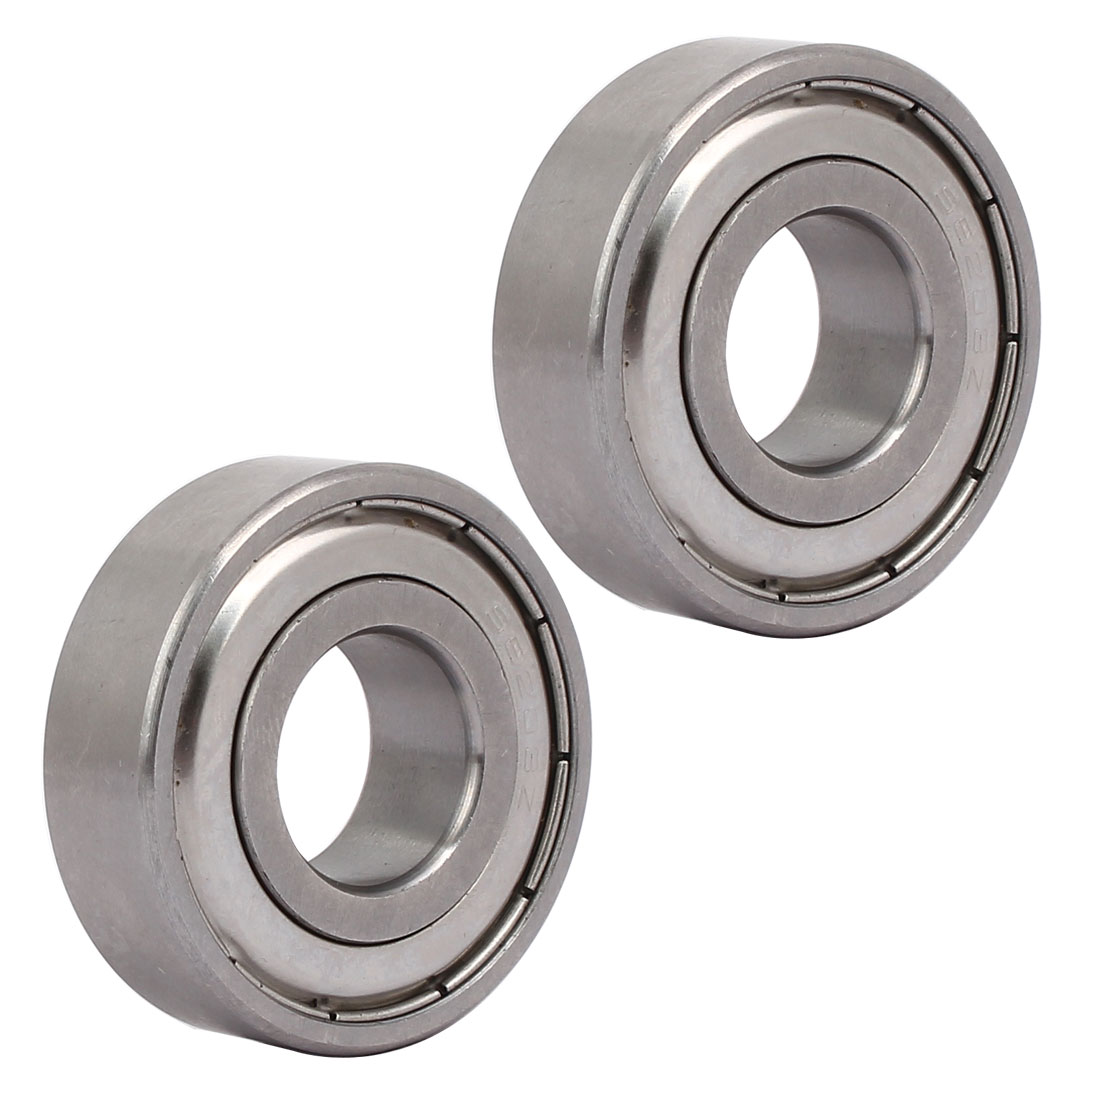 6203Z 40mmx17mmx12mm Stainless Steel Shielded Deep Groove Ball Bearing 2pcs